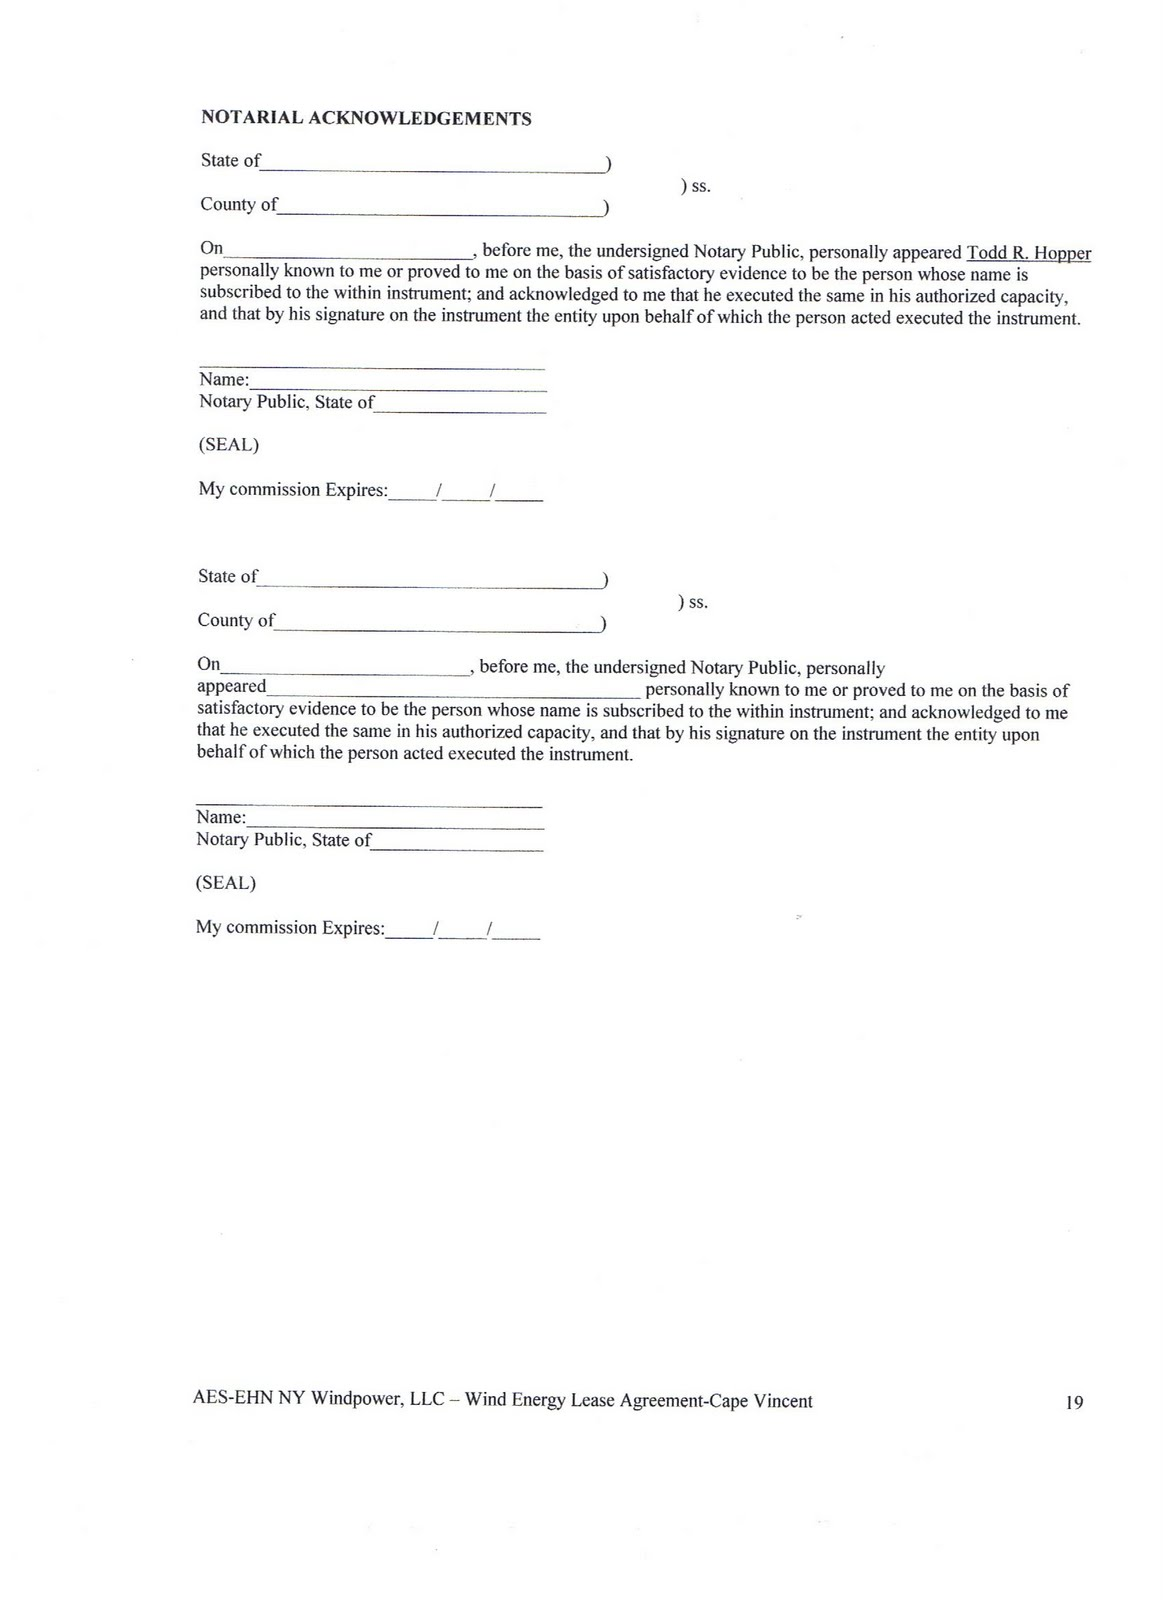 Energy Valley Of New York State Acciona Lease Agreement Pages 17 20